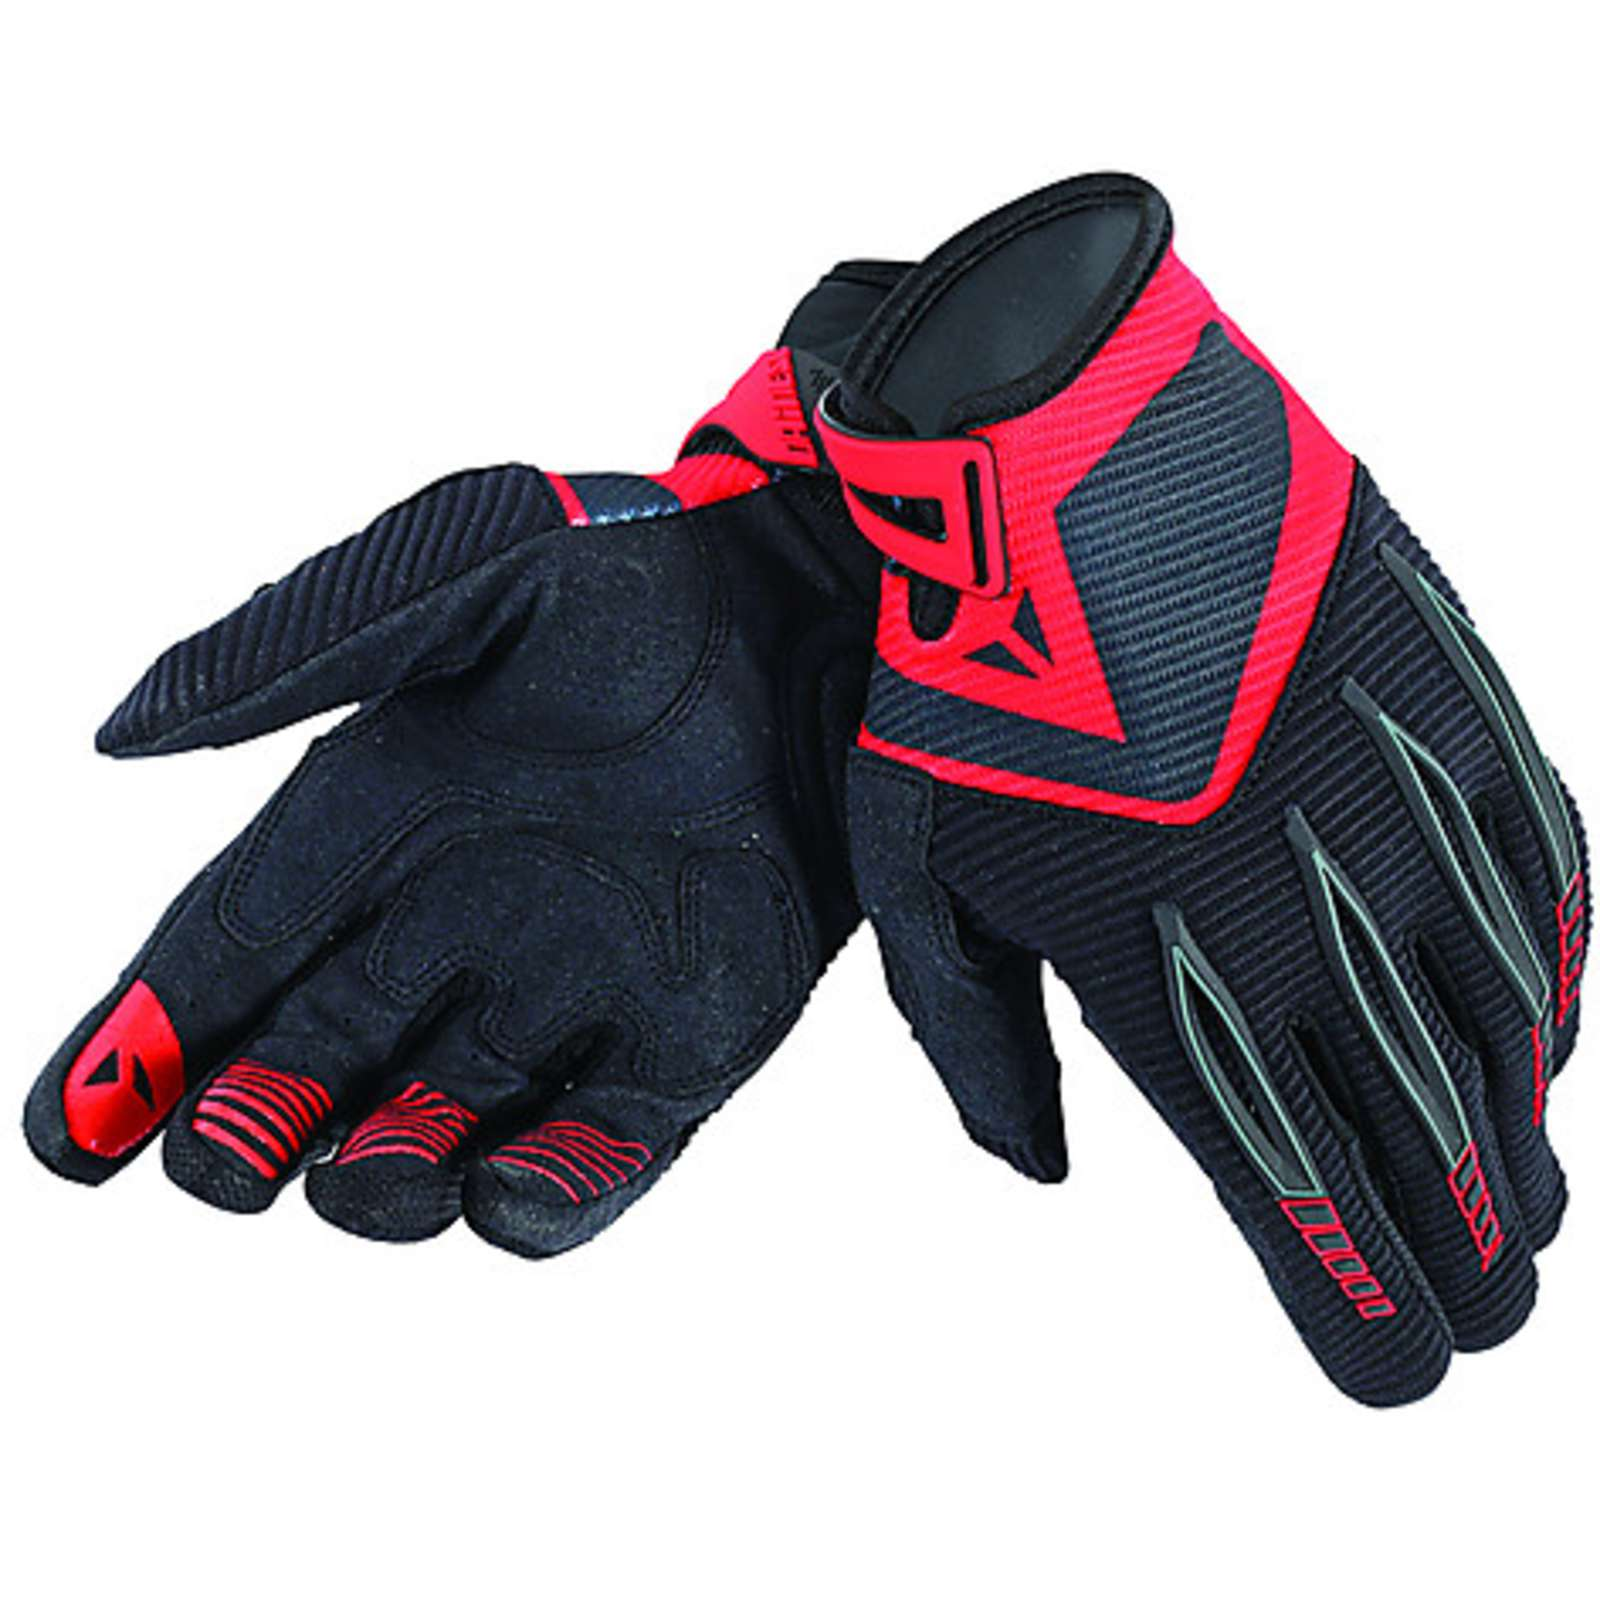 Motorcycle gloves ixs - Paddock Gloves Black Red Dainese